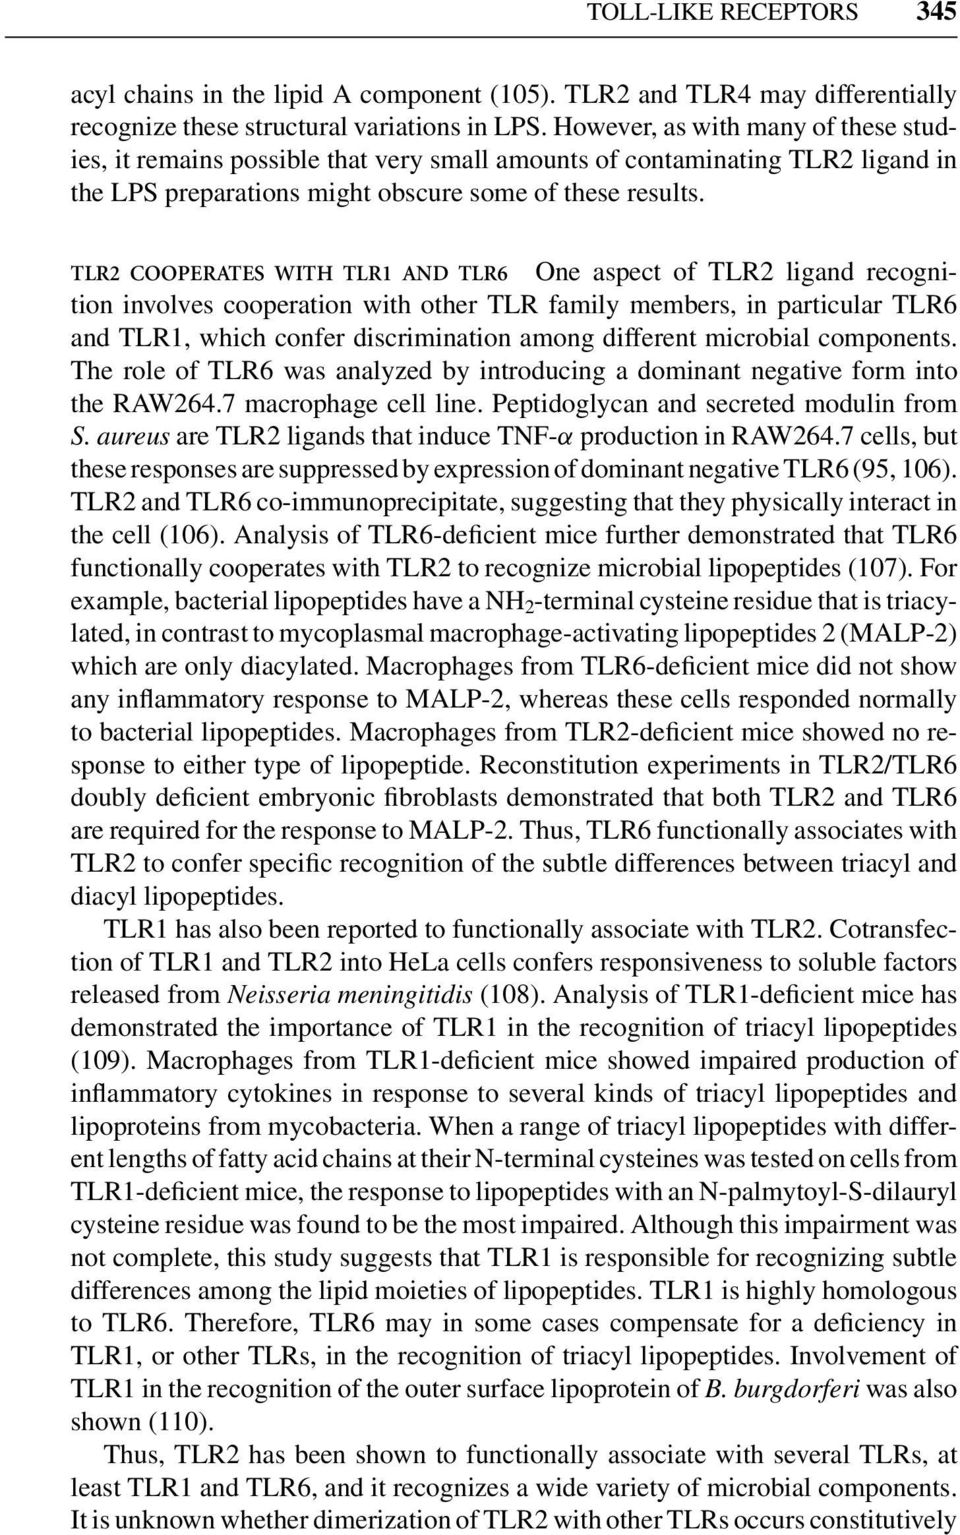 TLR2 COOPERATES WITH TLR1 AND TLR6 One aspect of TLR2 ligand recognition involves cooperation with other TLR family members, in particular TLR6 and TLR1, which confer discrimination among different